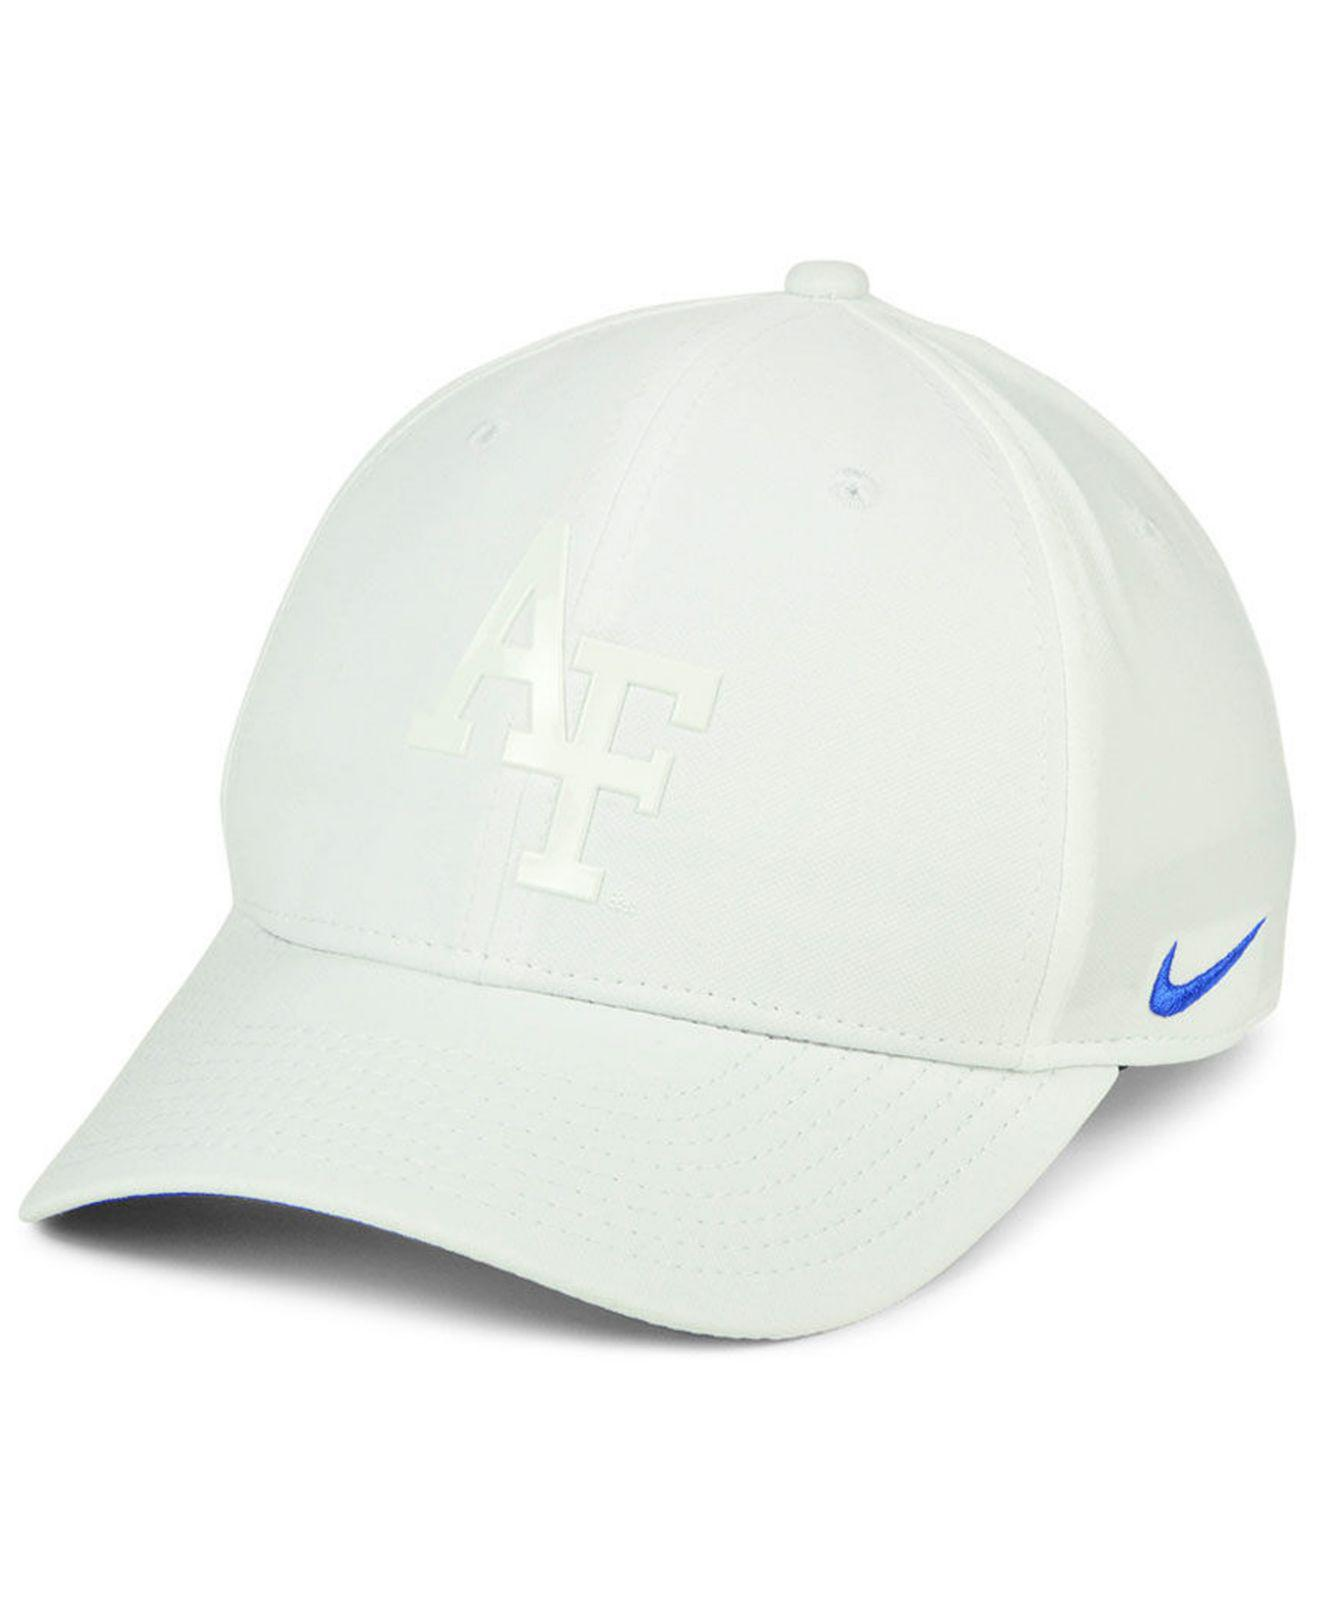 4634faf2 Lyst - Nike Air Force Falcons Col Cap in White for Men